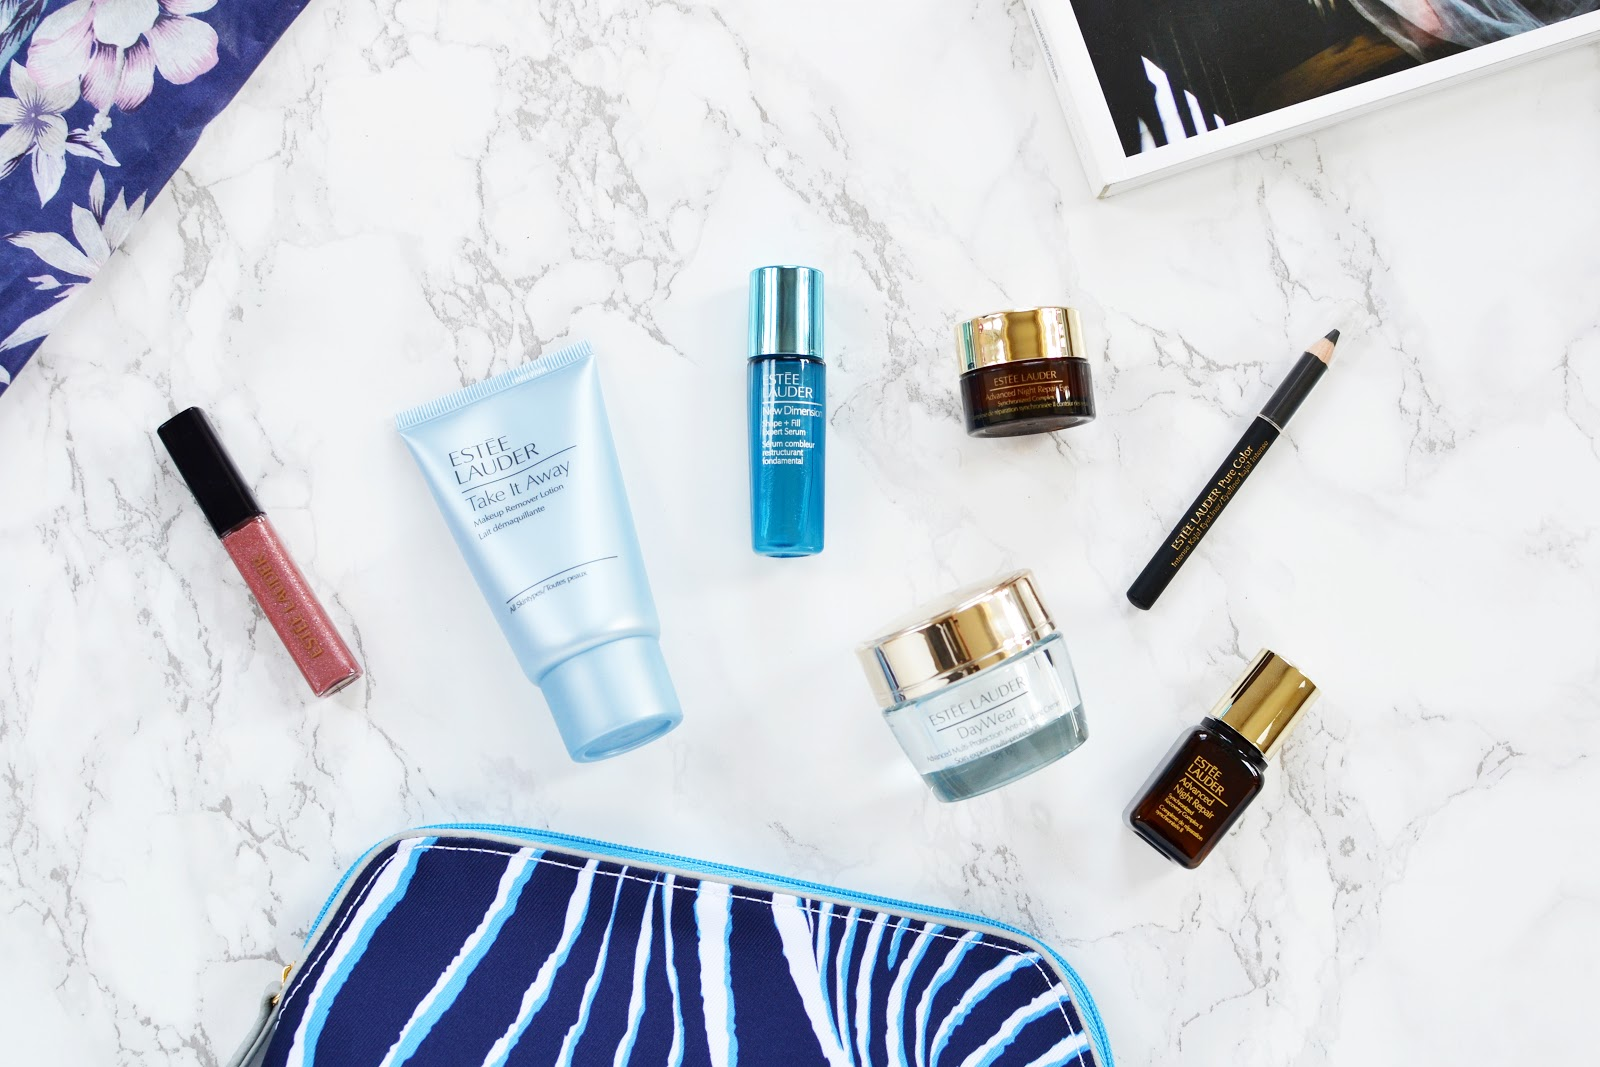 A Free Gift From Estee Lauder